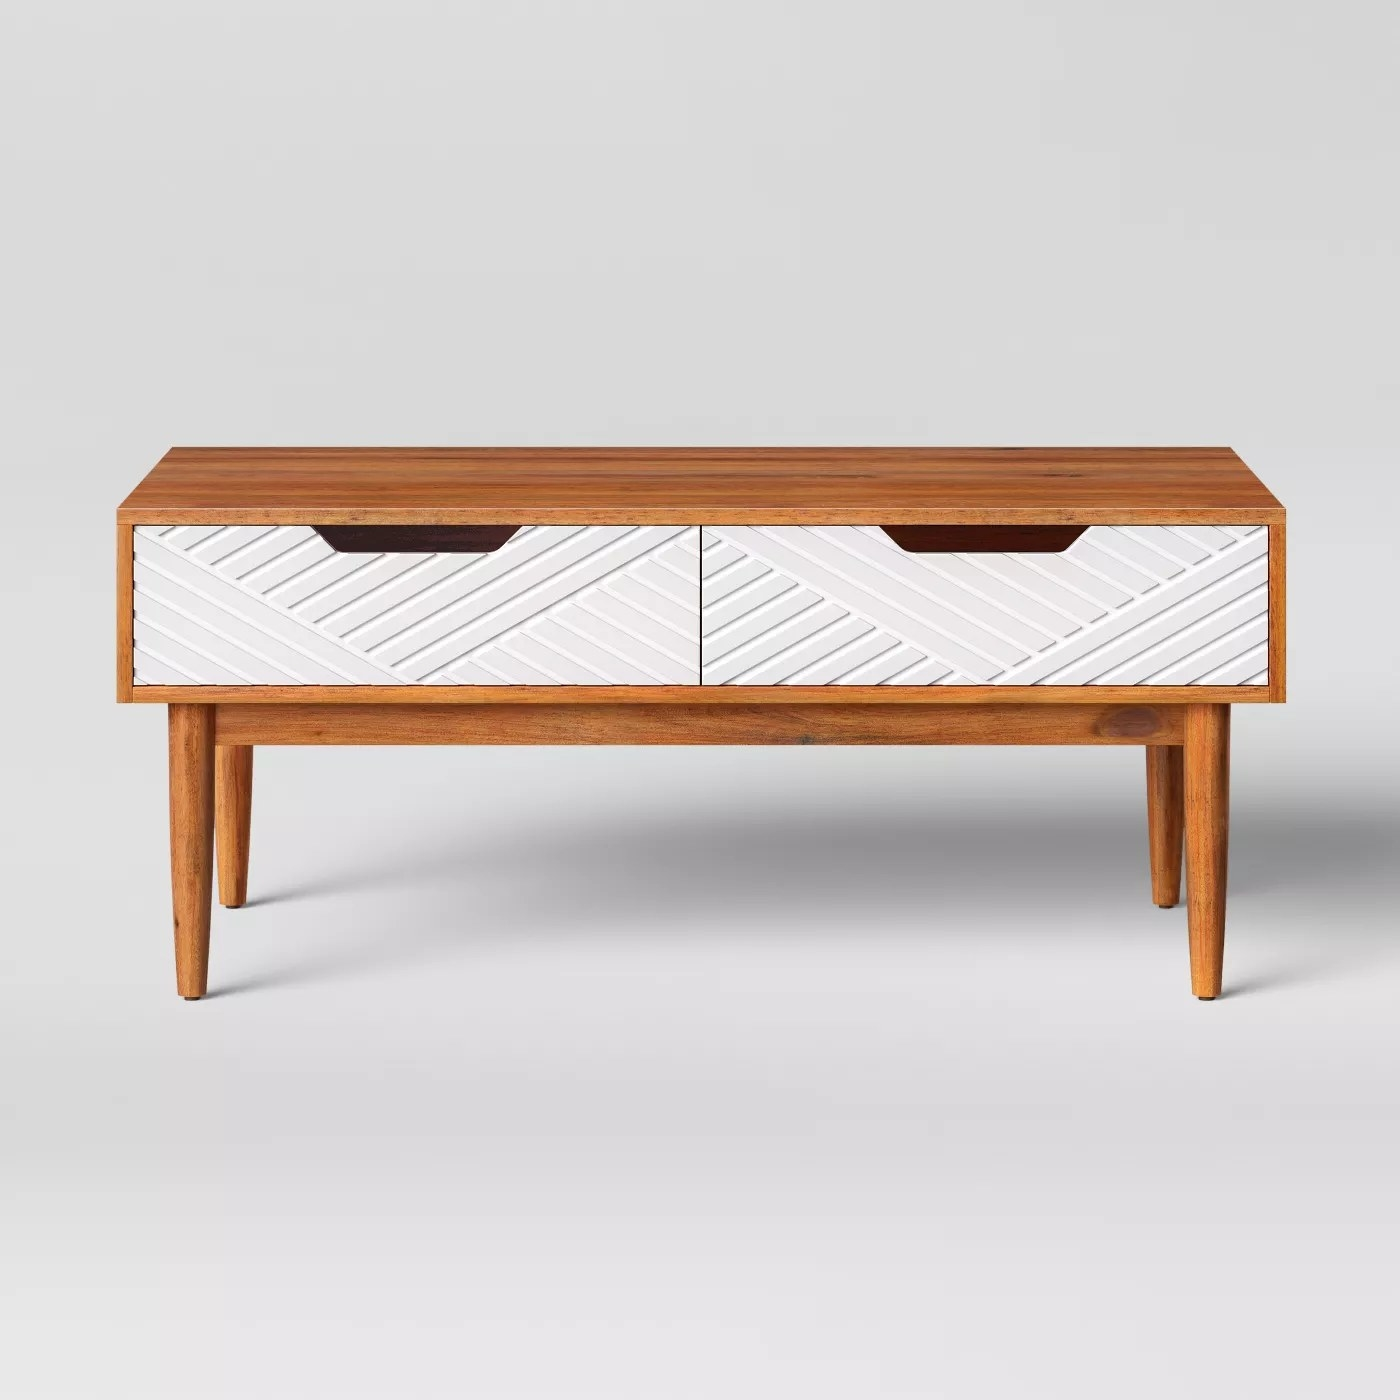 The wooden coffee table with white textured drawers